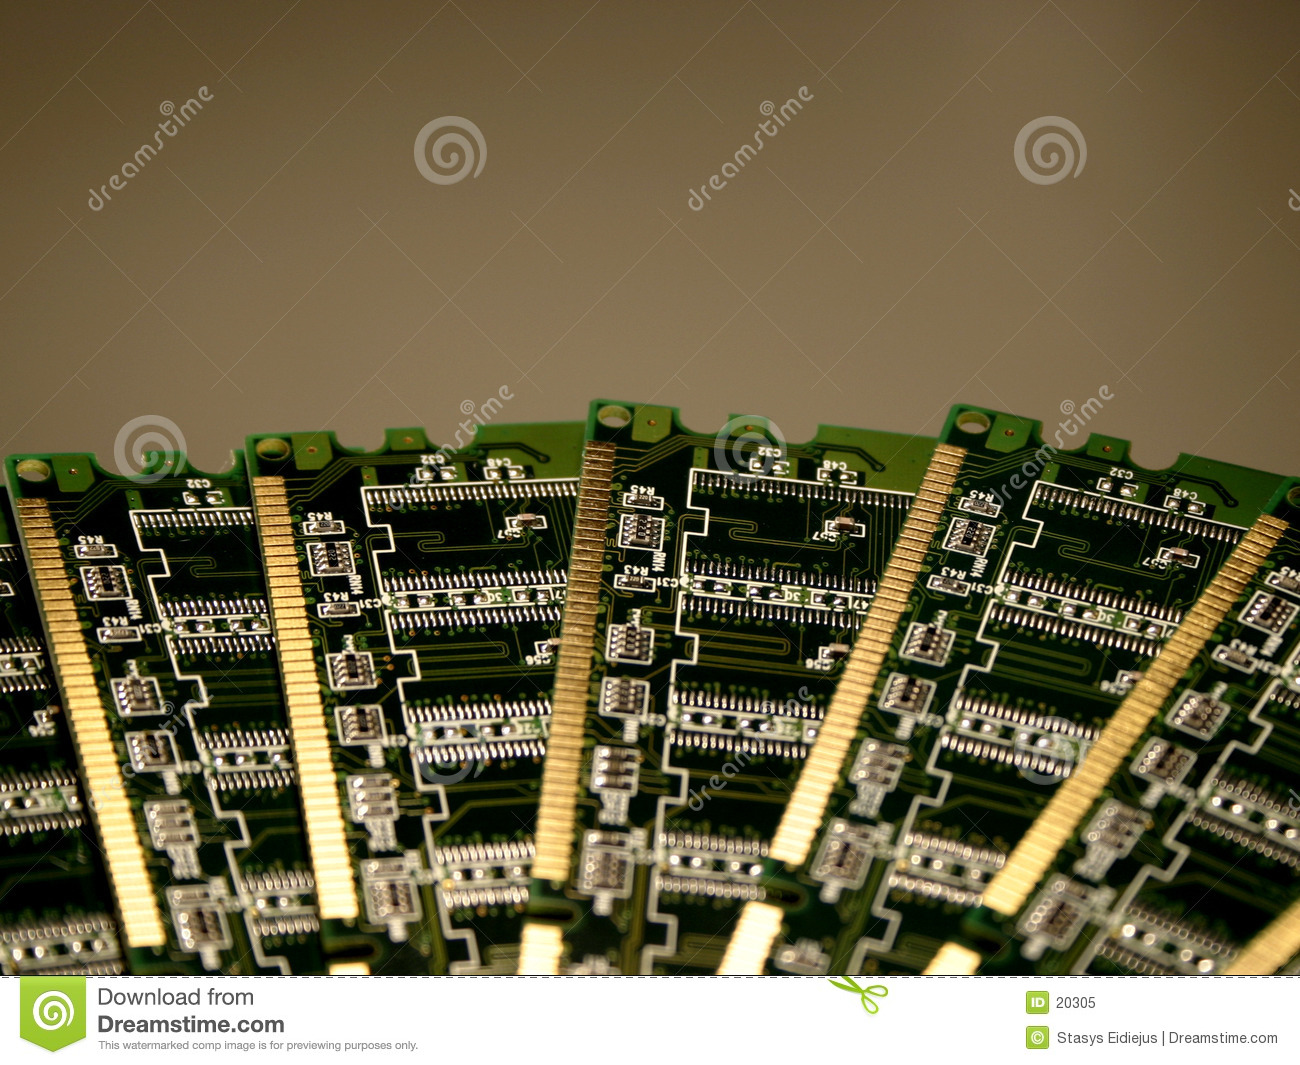 Computer memory modules IV